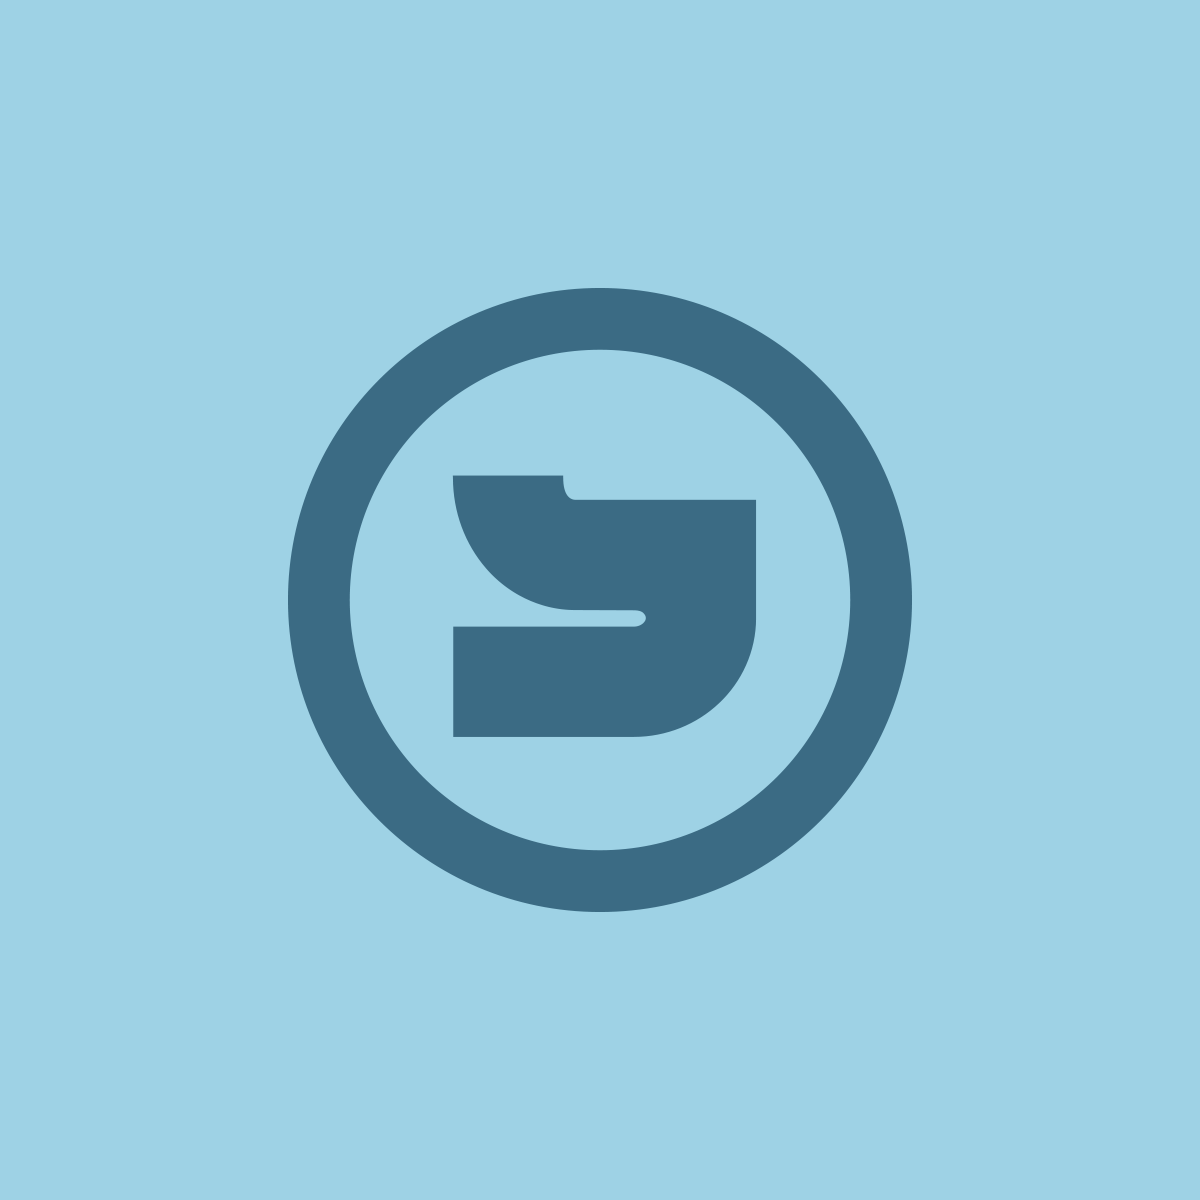 Combo pack: 3x HIIT part 1,2,3